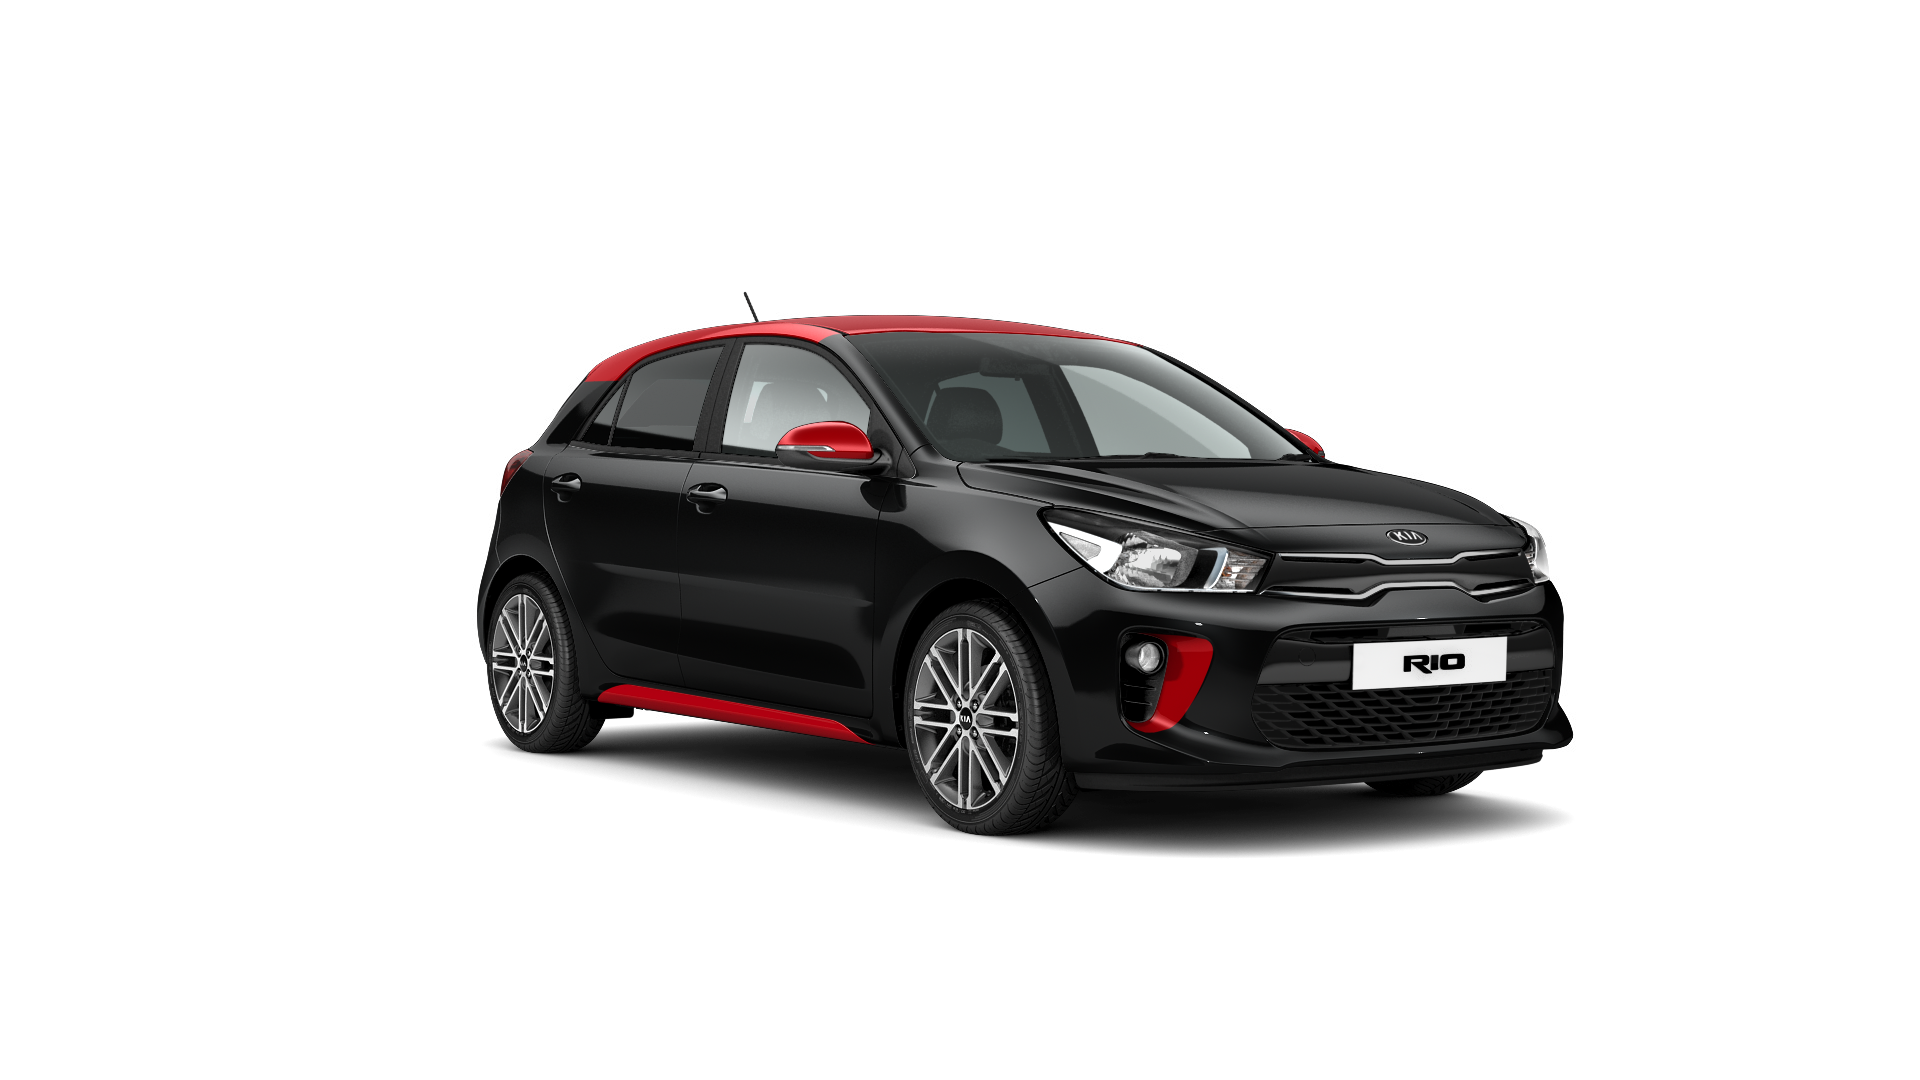 Kia Rio Rio Pulse - Midnight Black